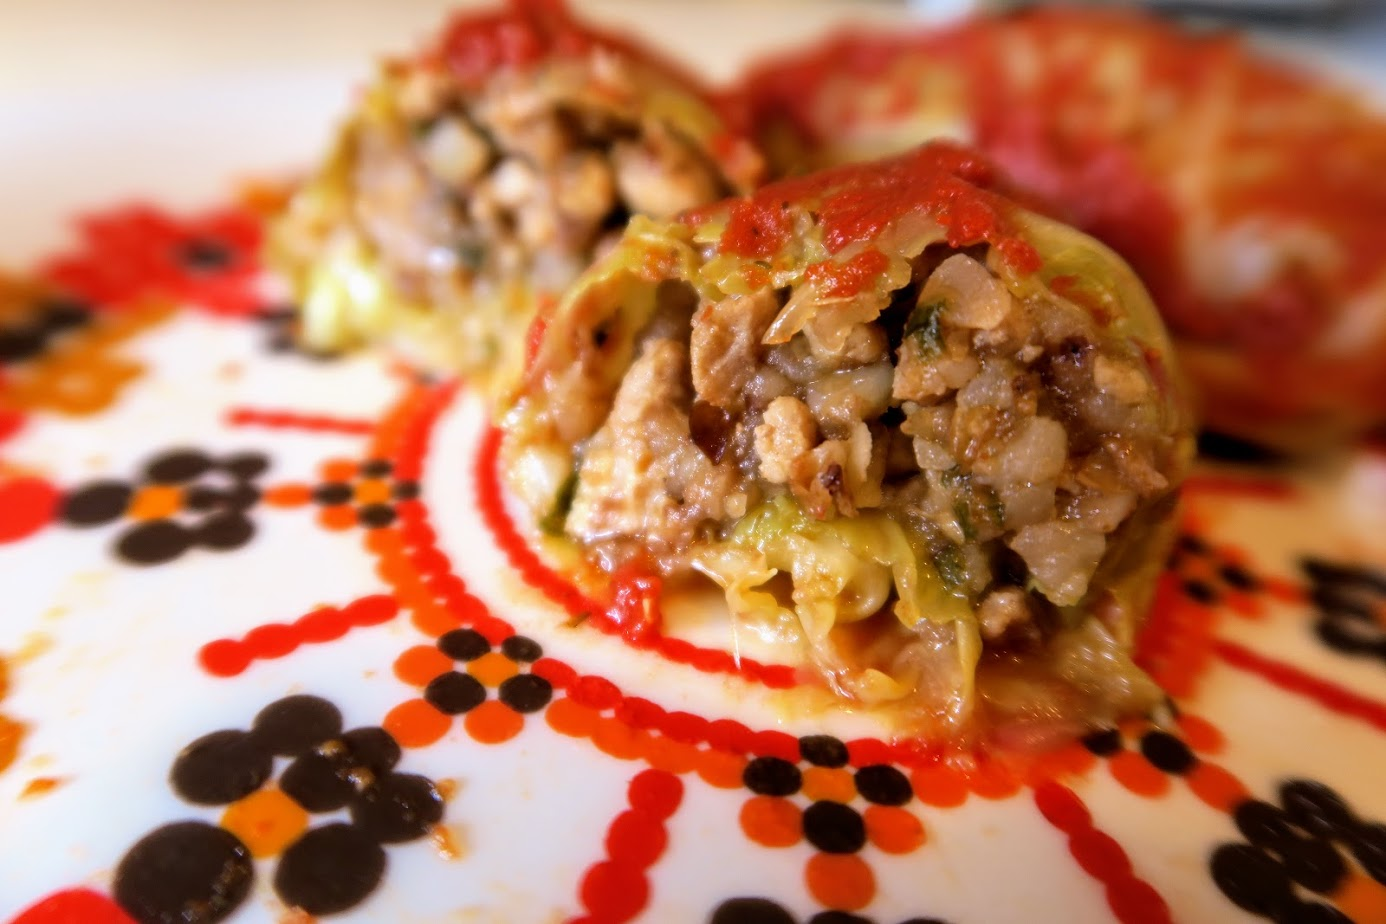 Three cabbage rolls on a plate with one cut into showing the buckwheat and meat filling